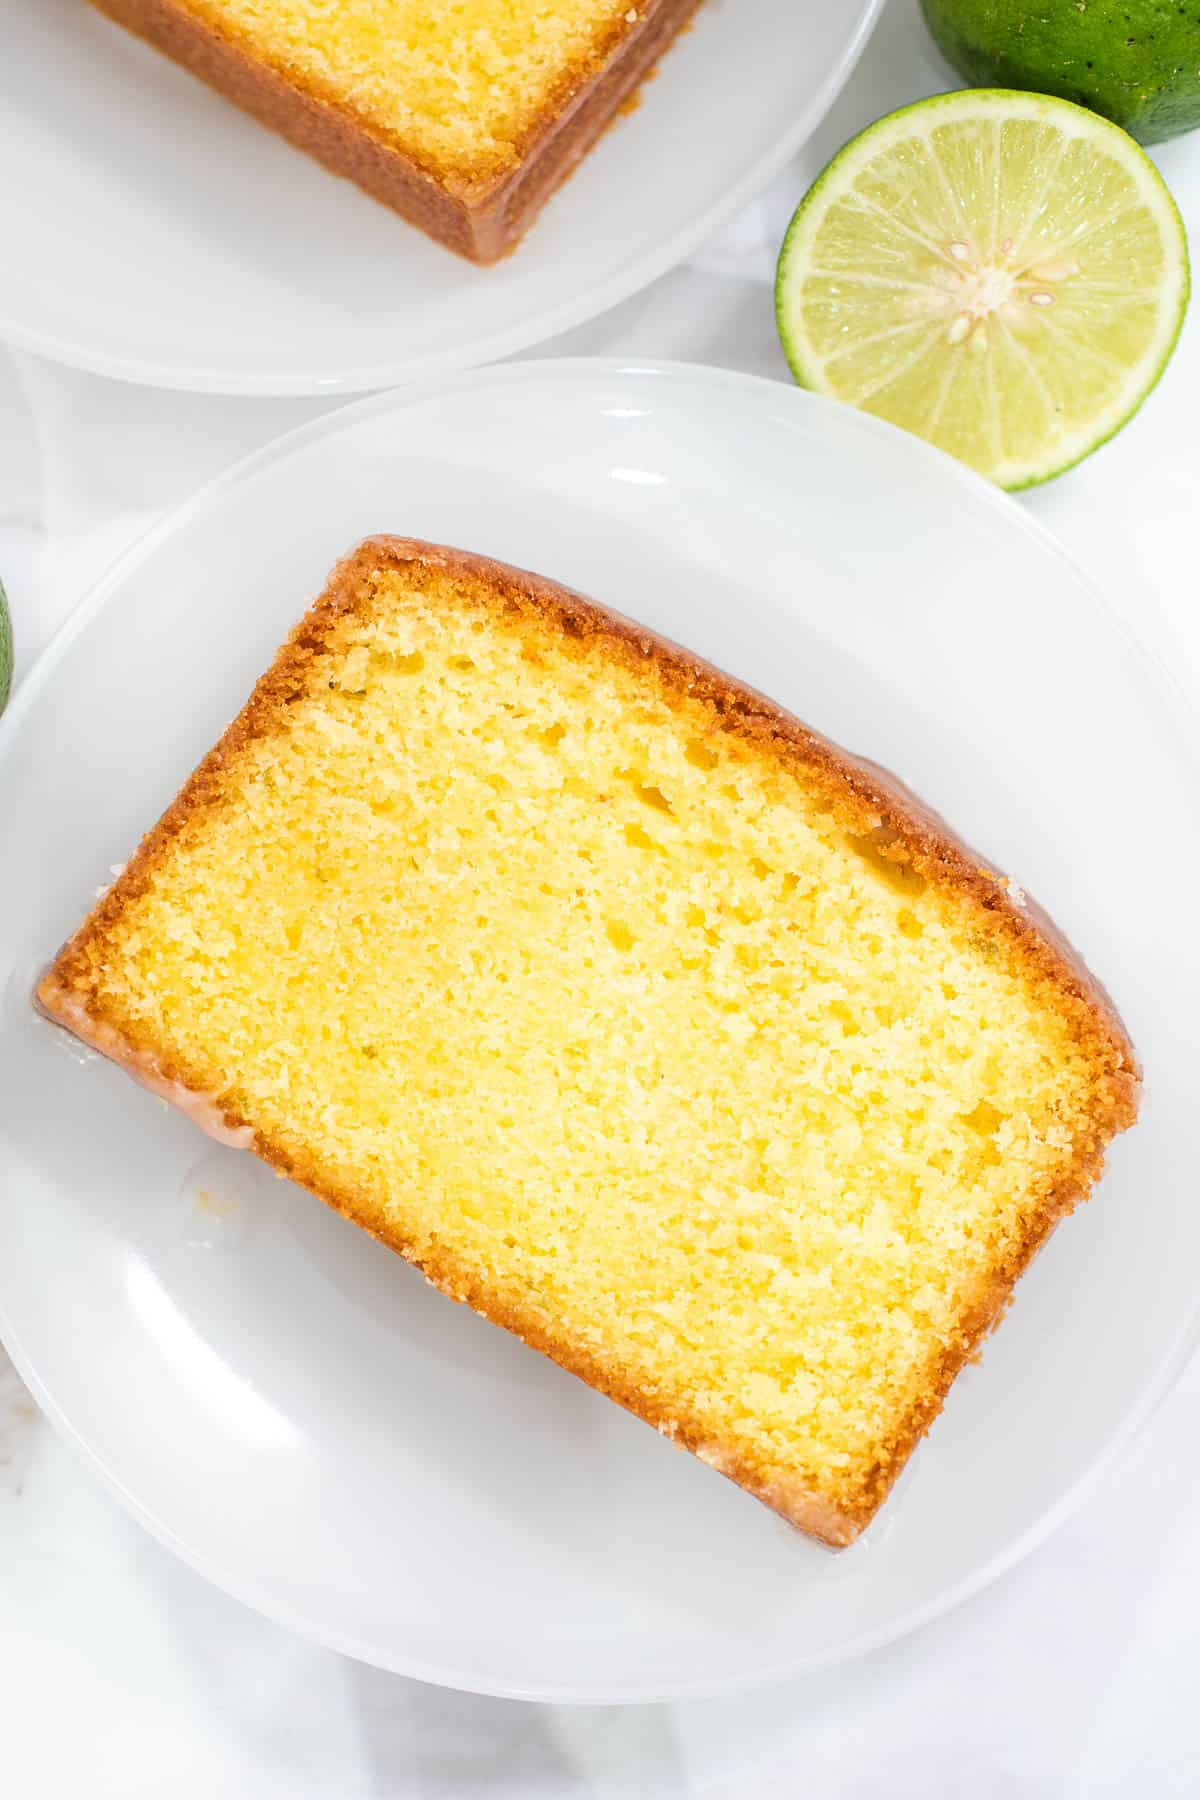 A slice of loaf cake on a white plate